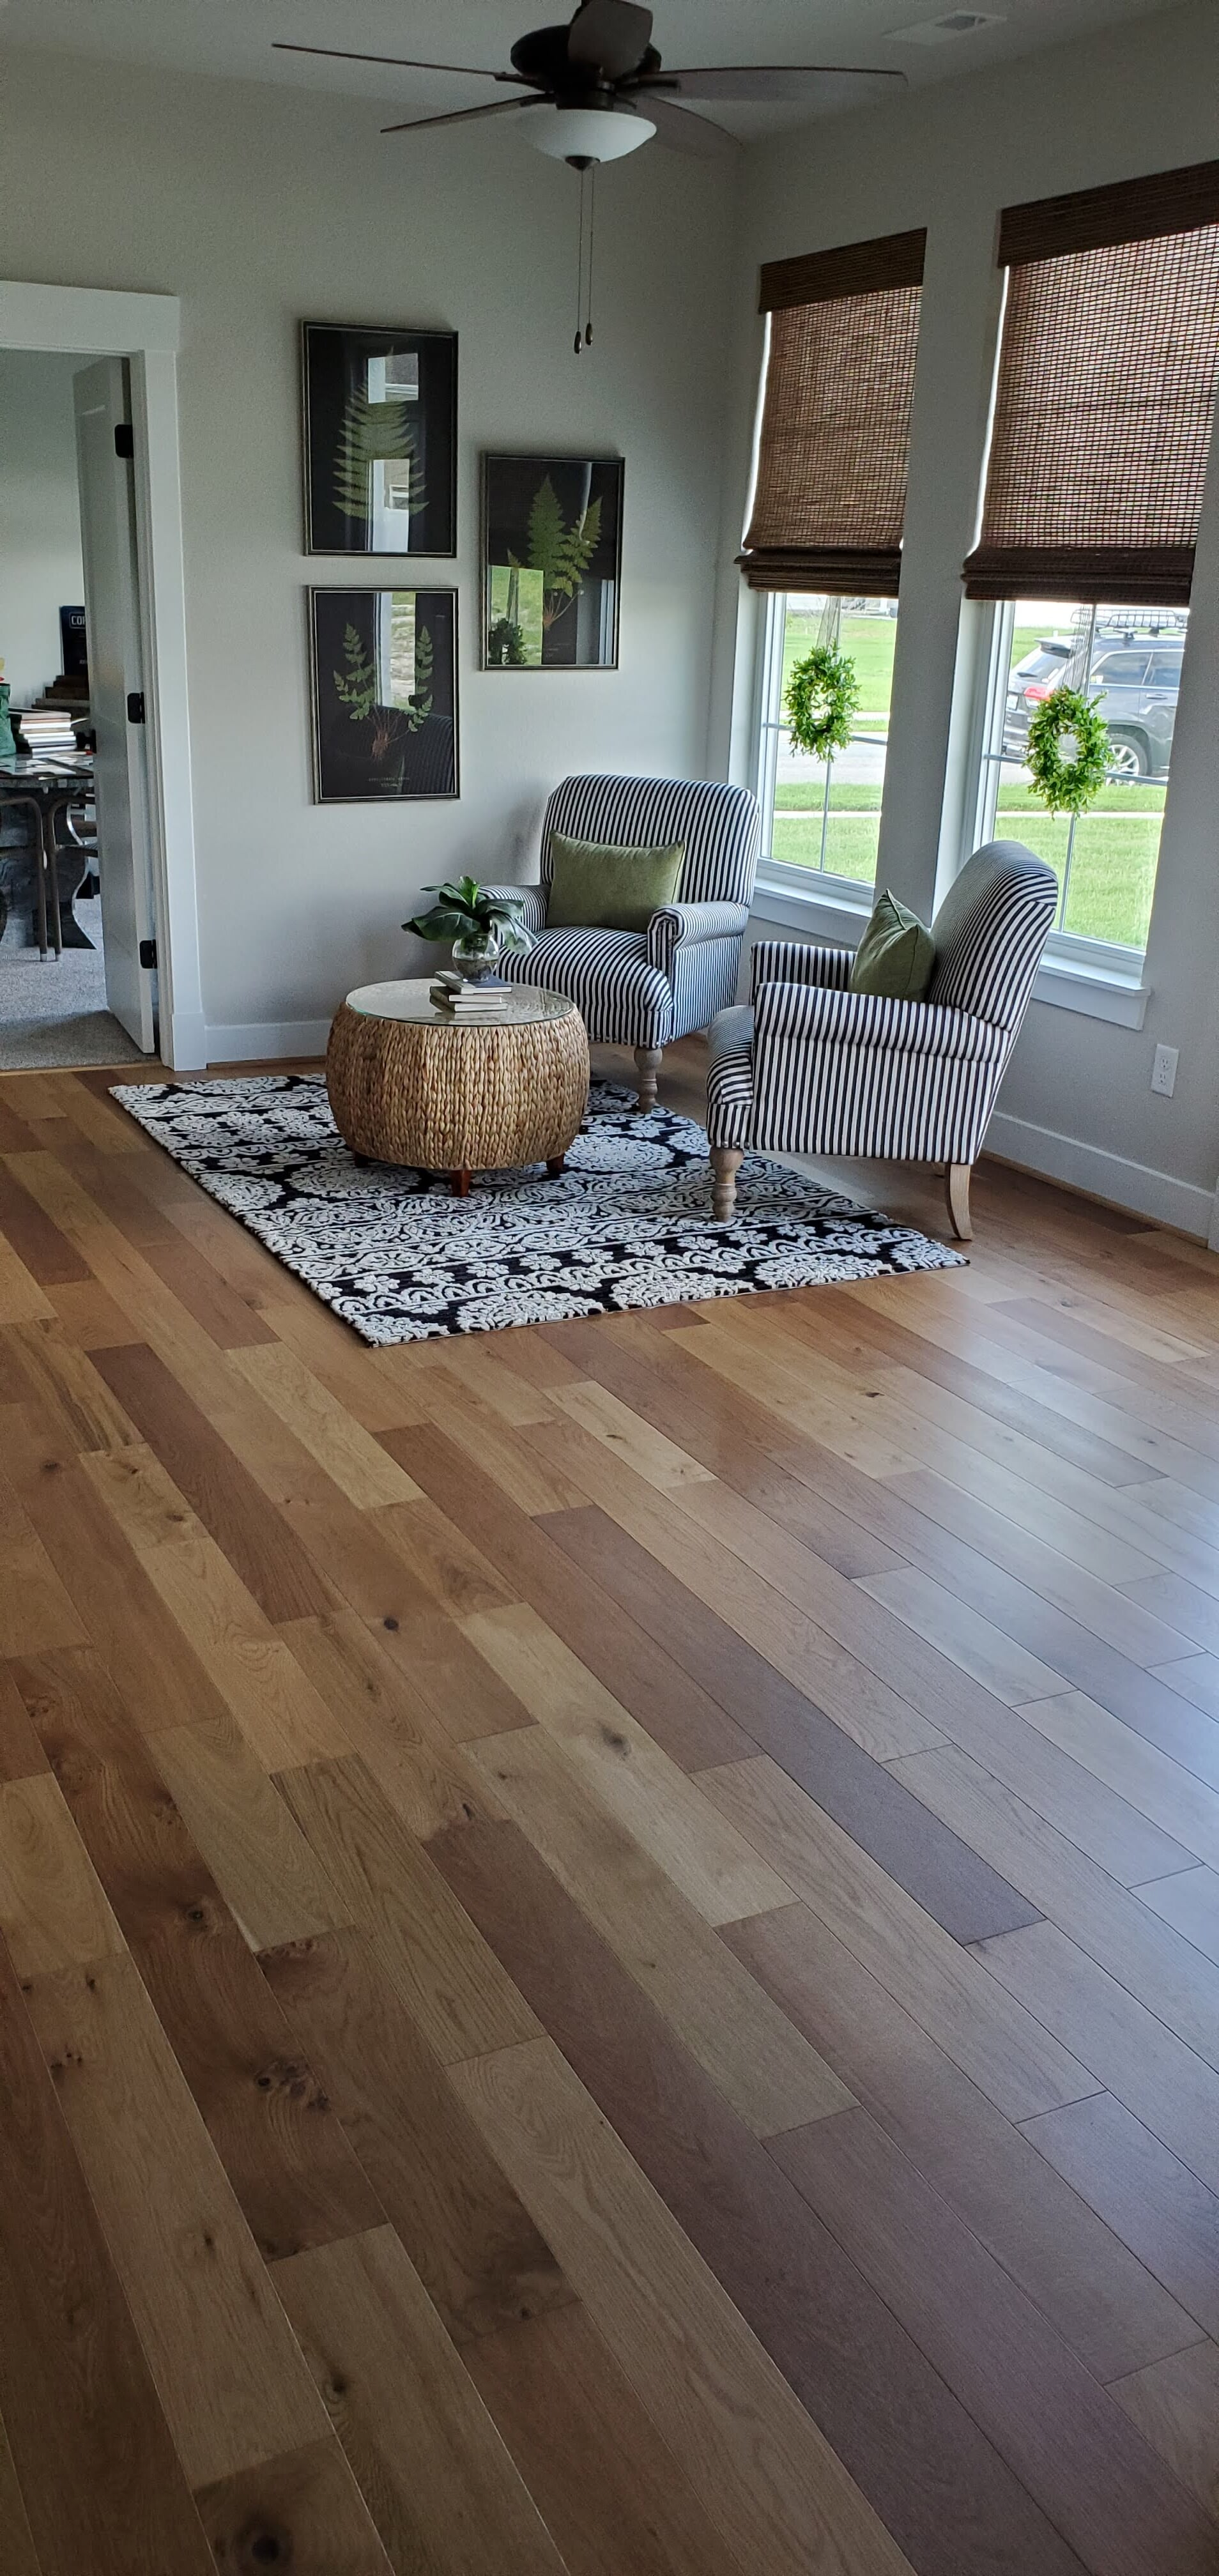 Multi color hardwood flooring in Moyock, VA from Floors Unlimited